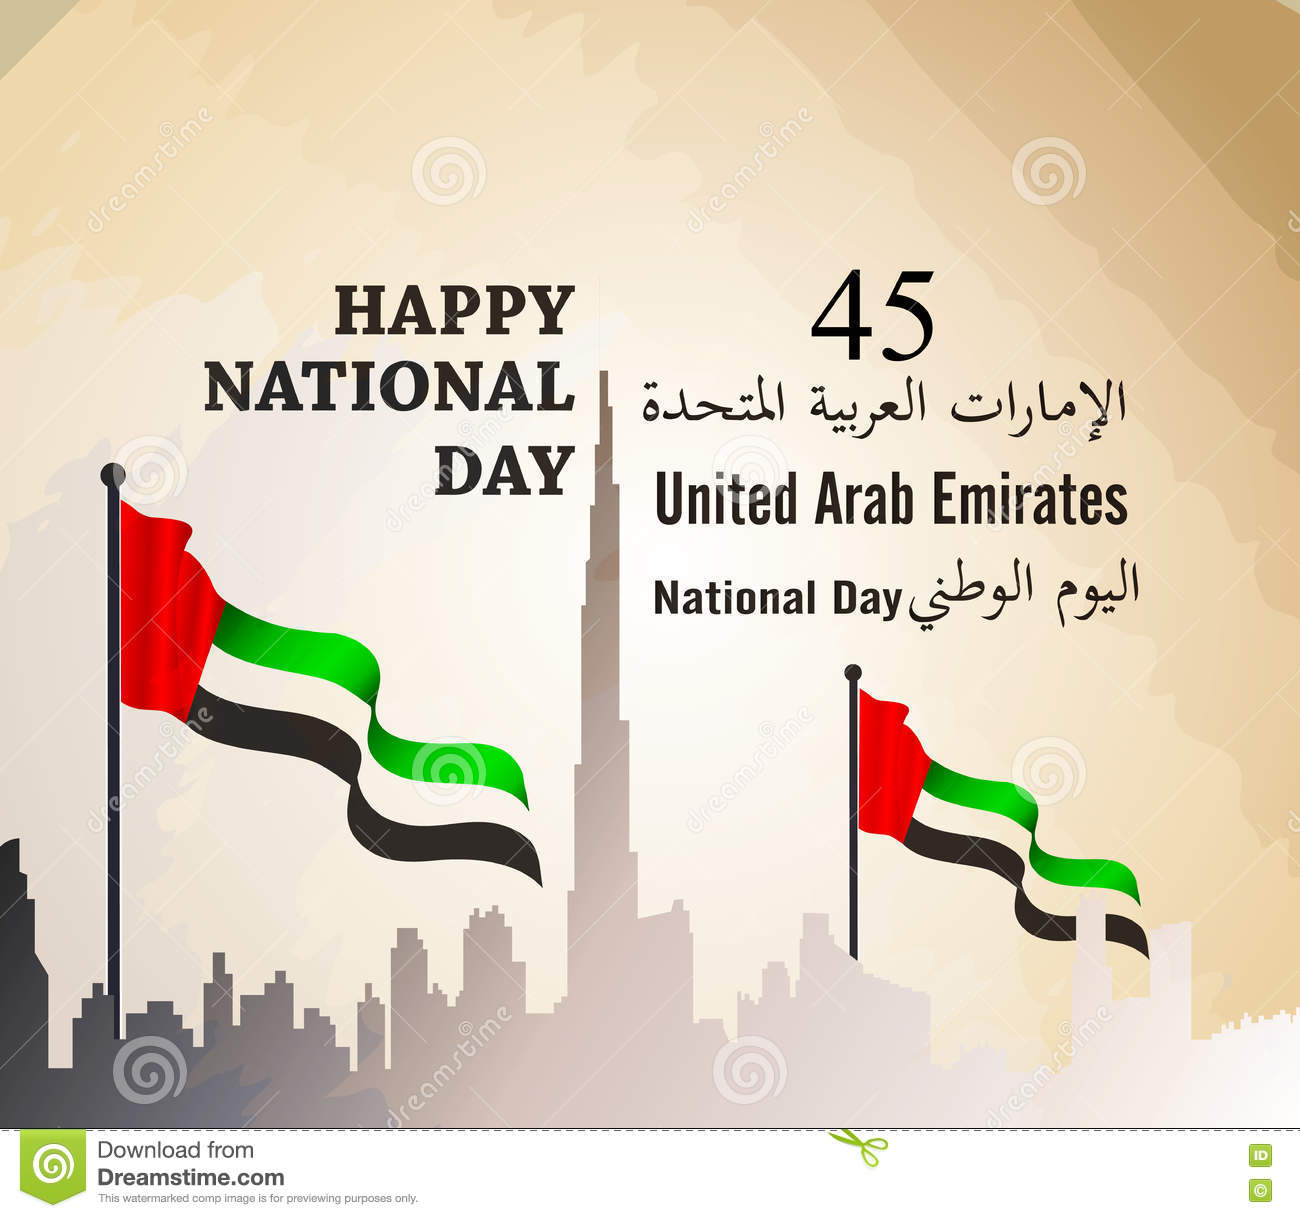 United Arab Emirates Uae National Day With An Inscription In Arabic